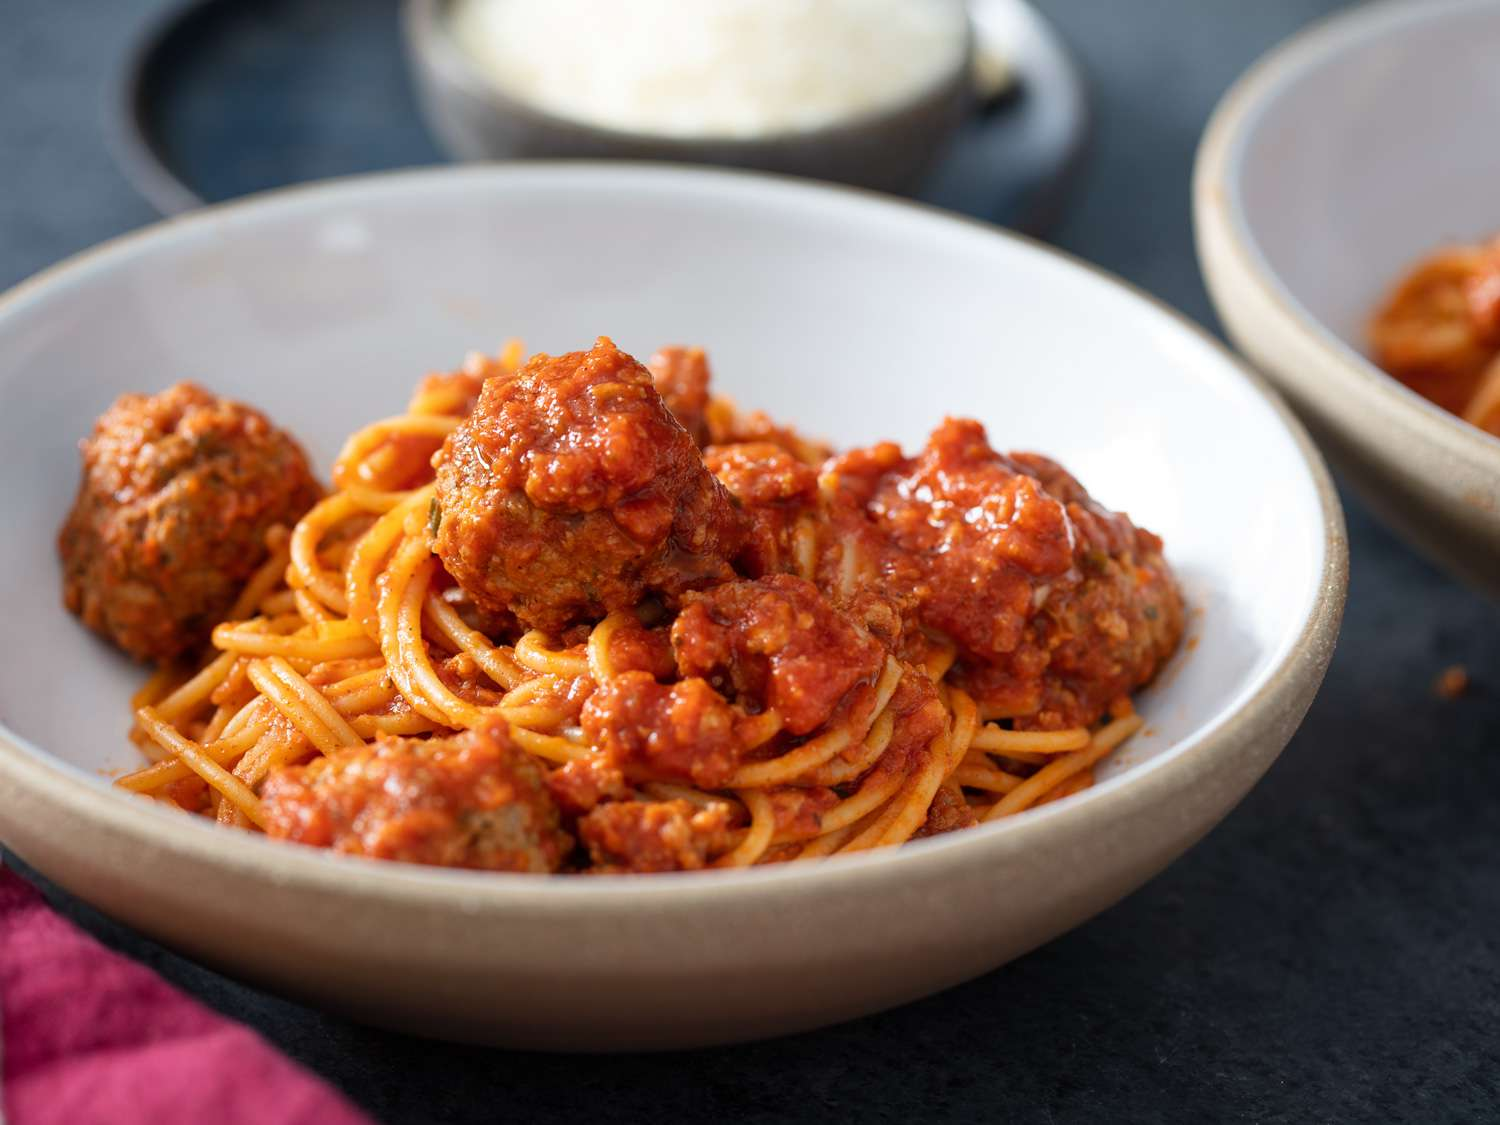 side angle of spaghetti and meatballs in a white bowl